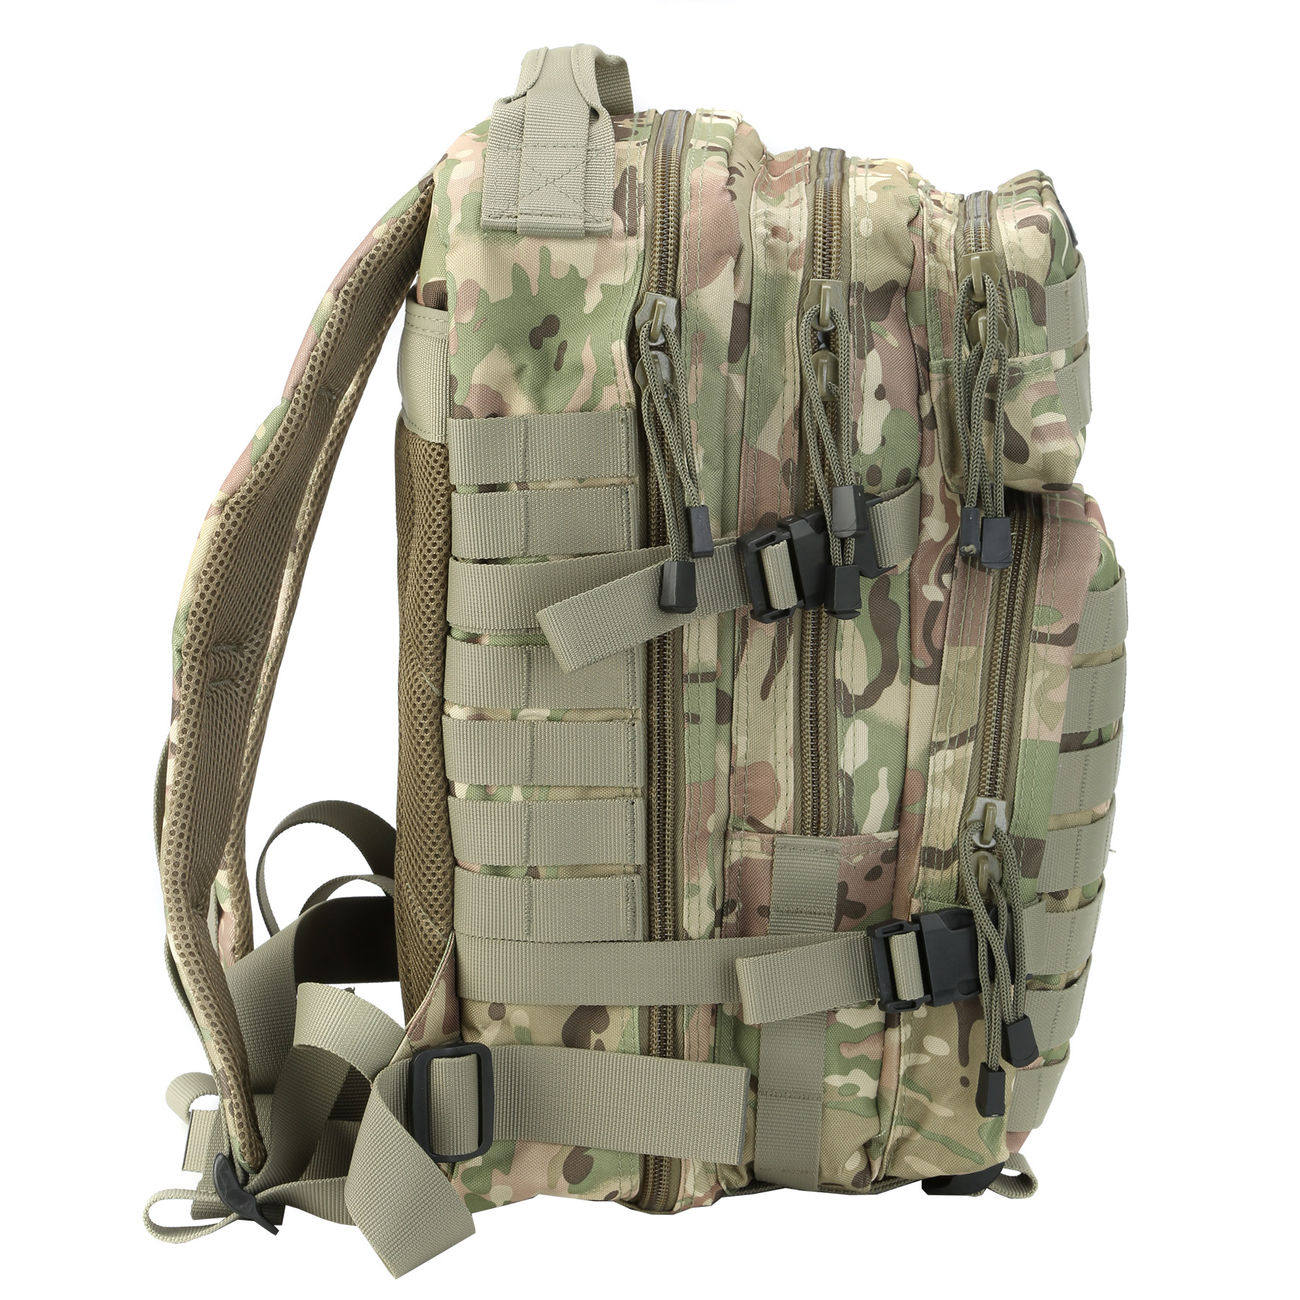 MFH Rucksack Assault I operation camo 1